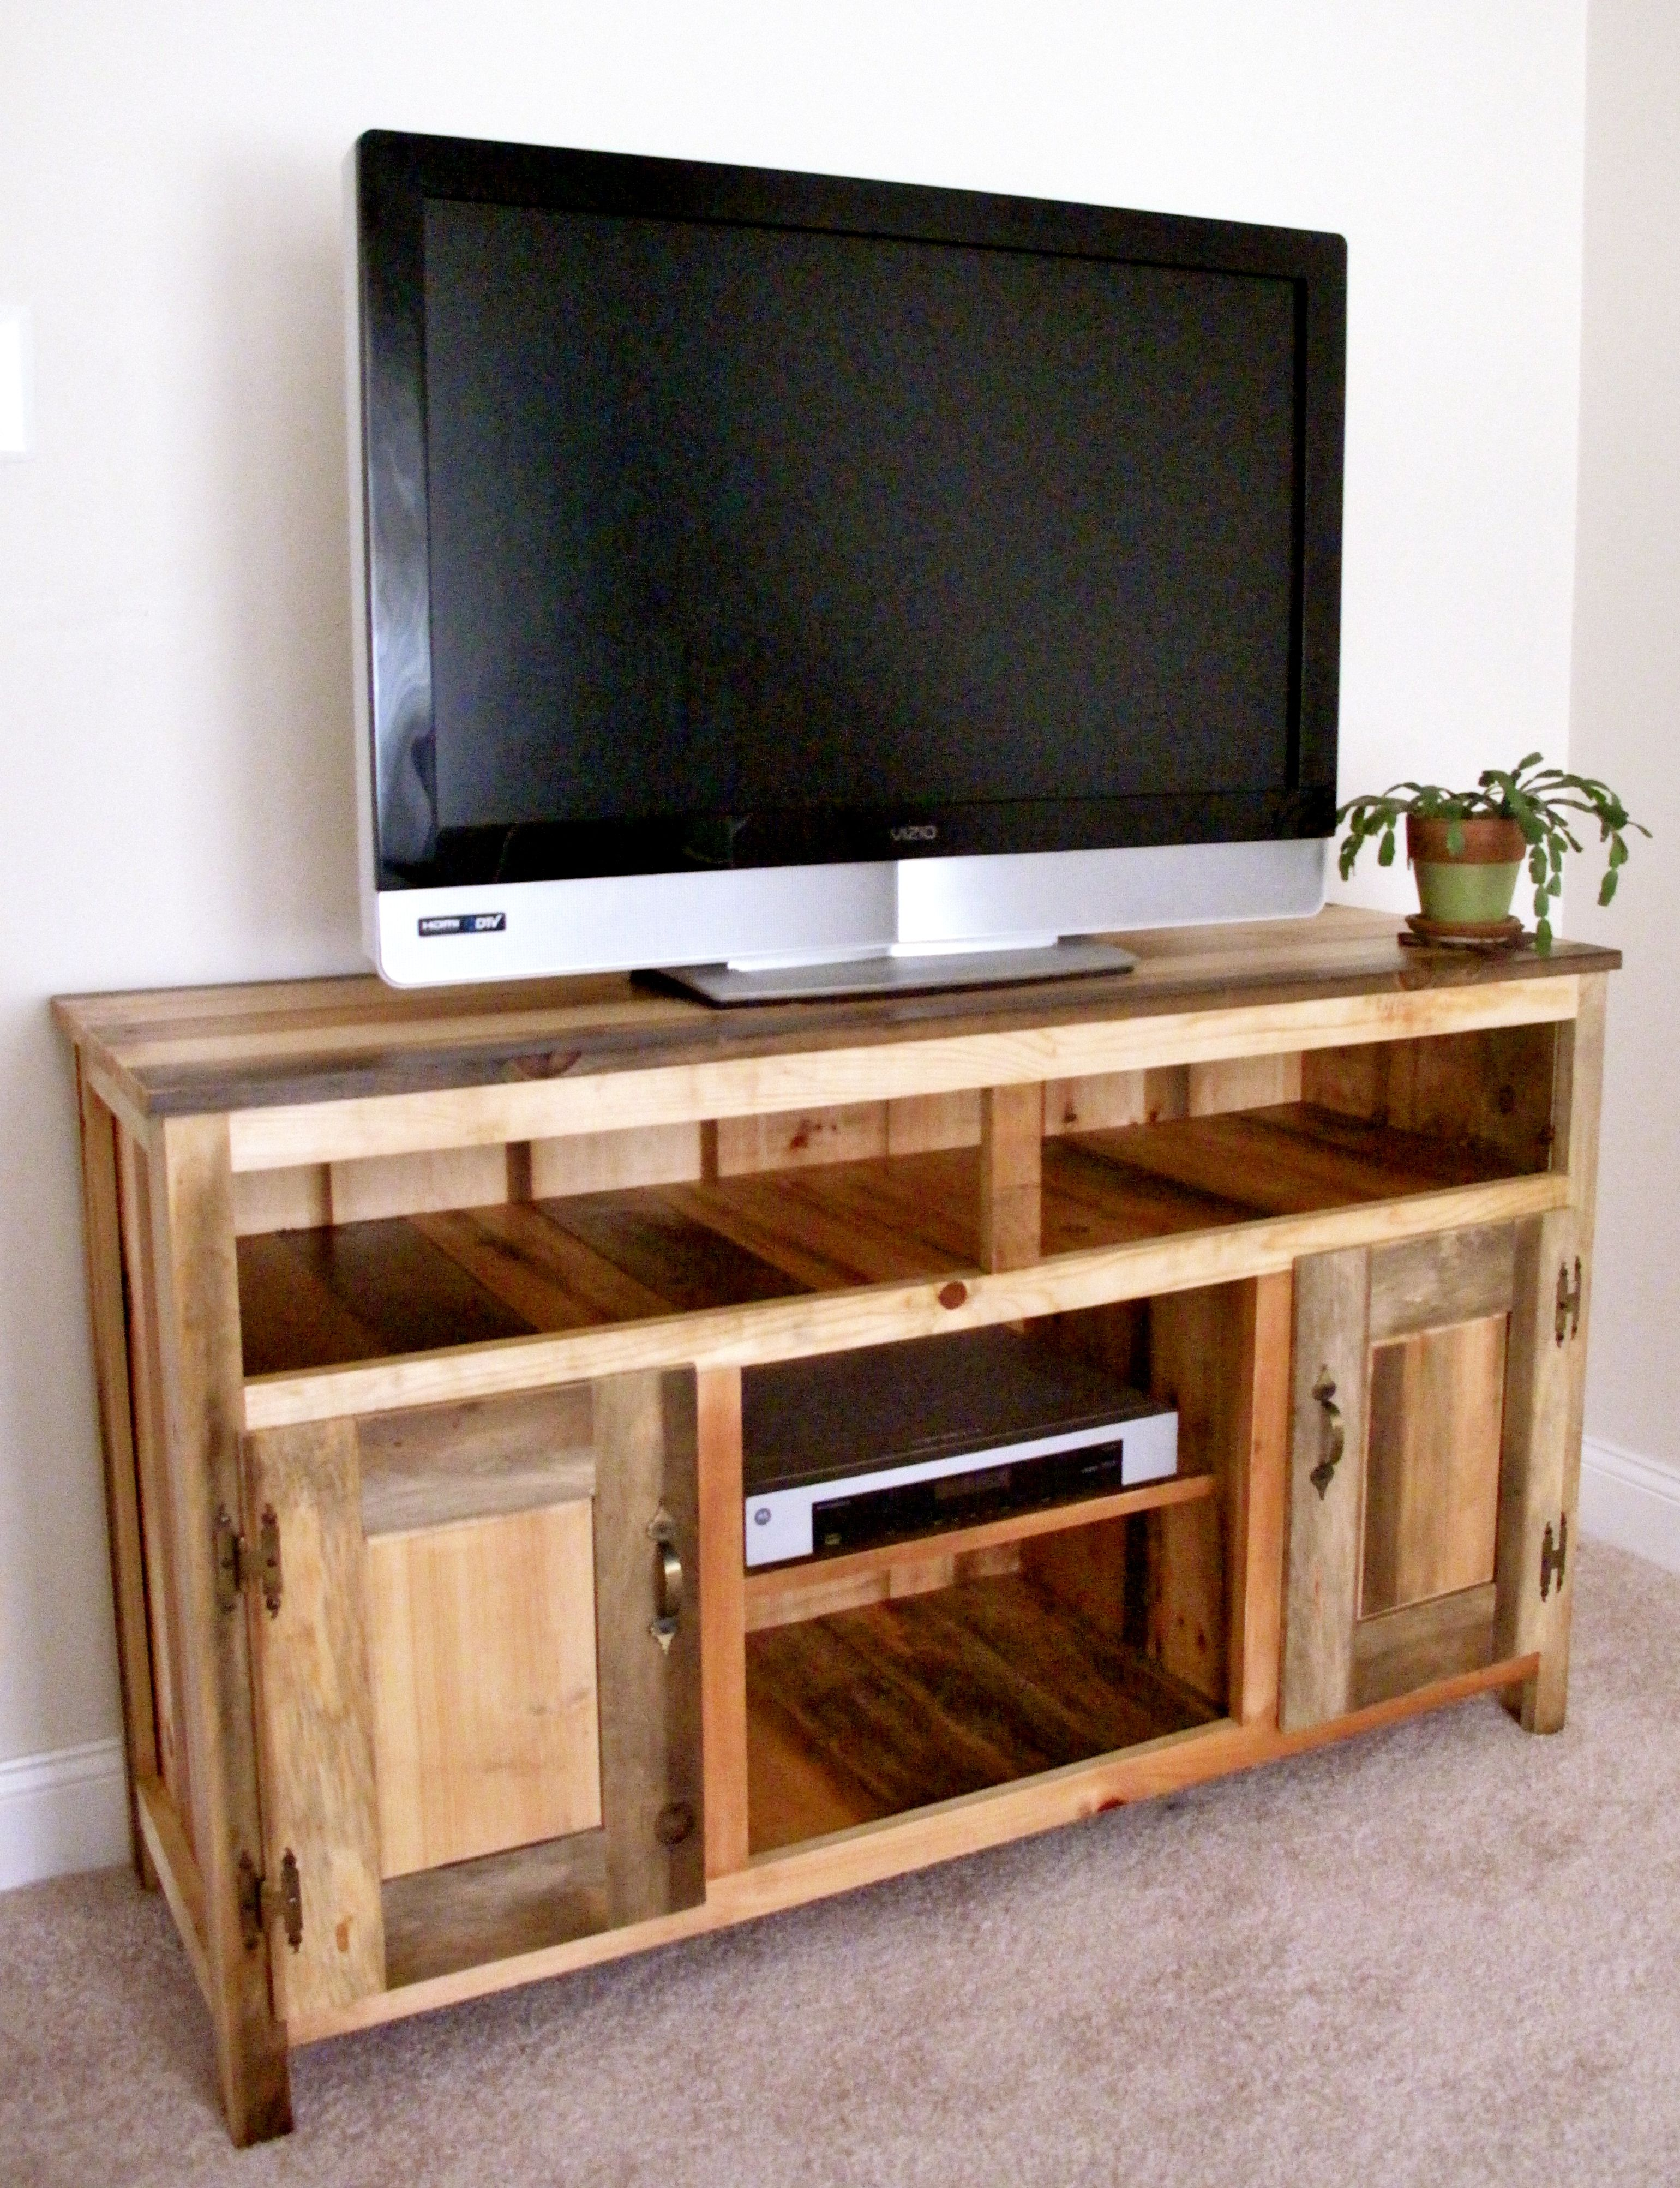 Quality, Hand Built Furniture With Creative Character And Rustic Charm.